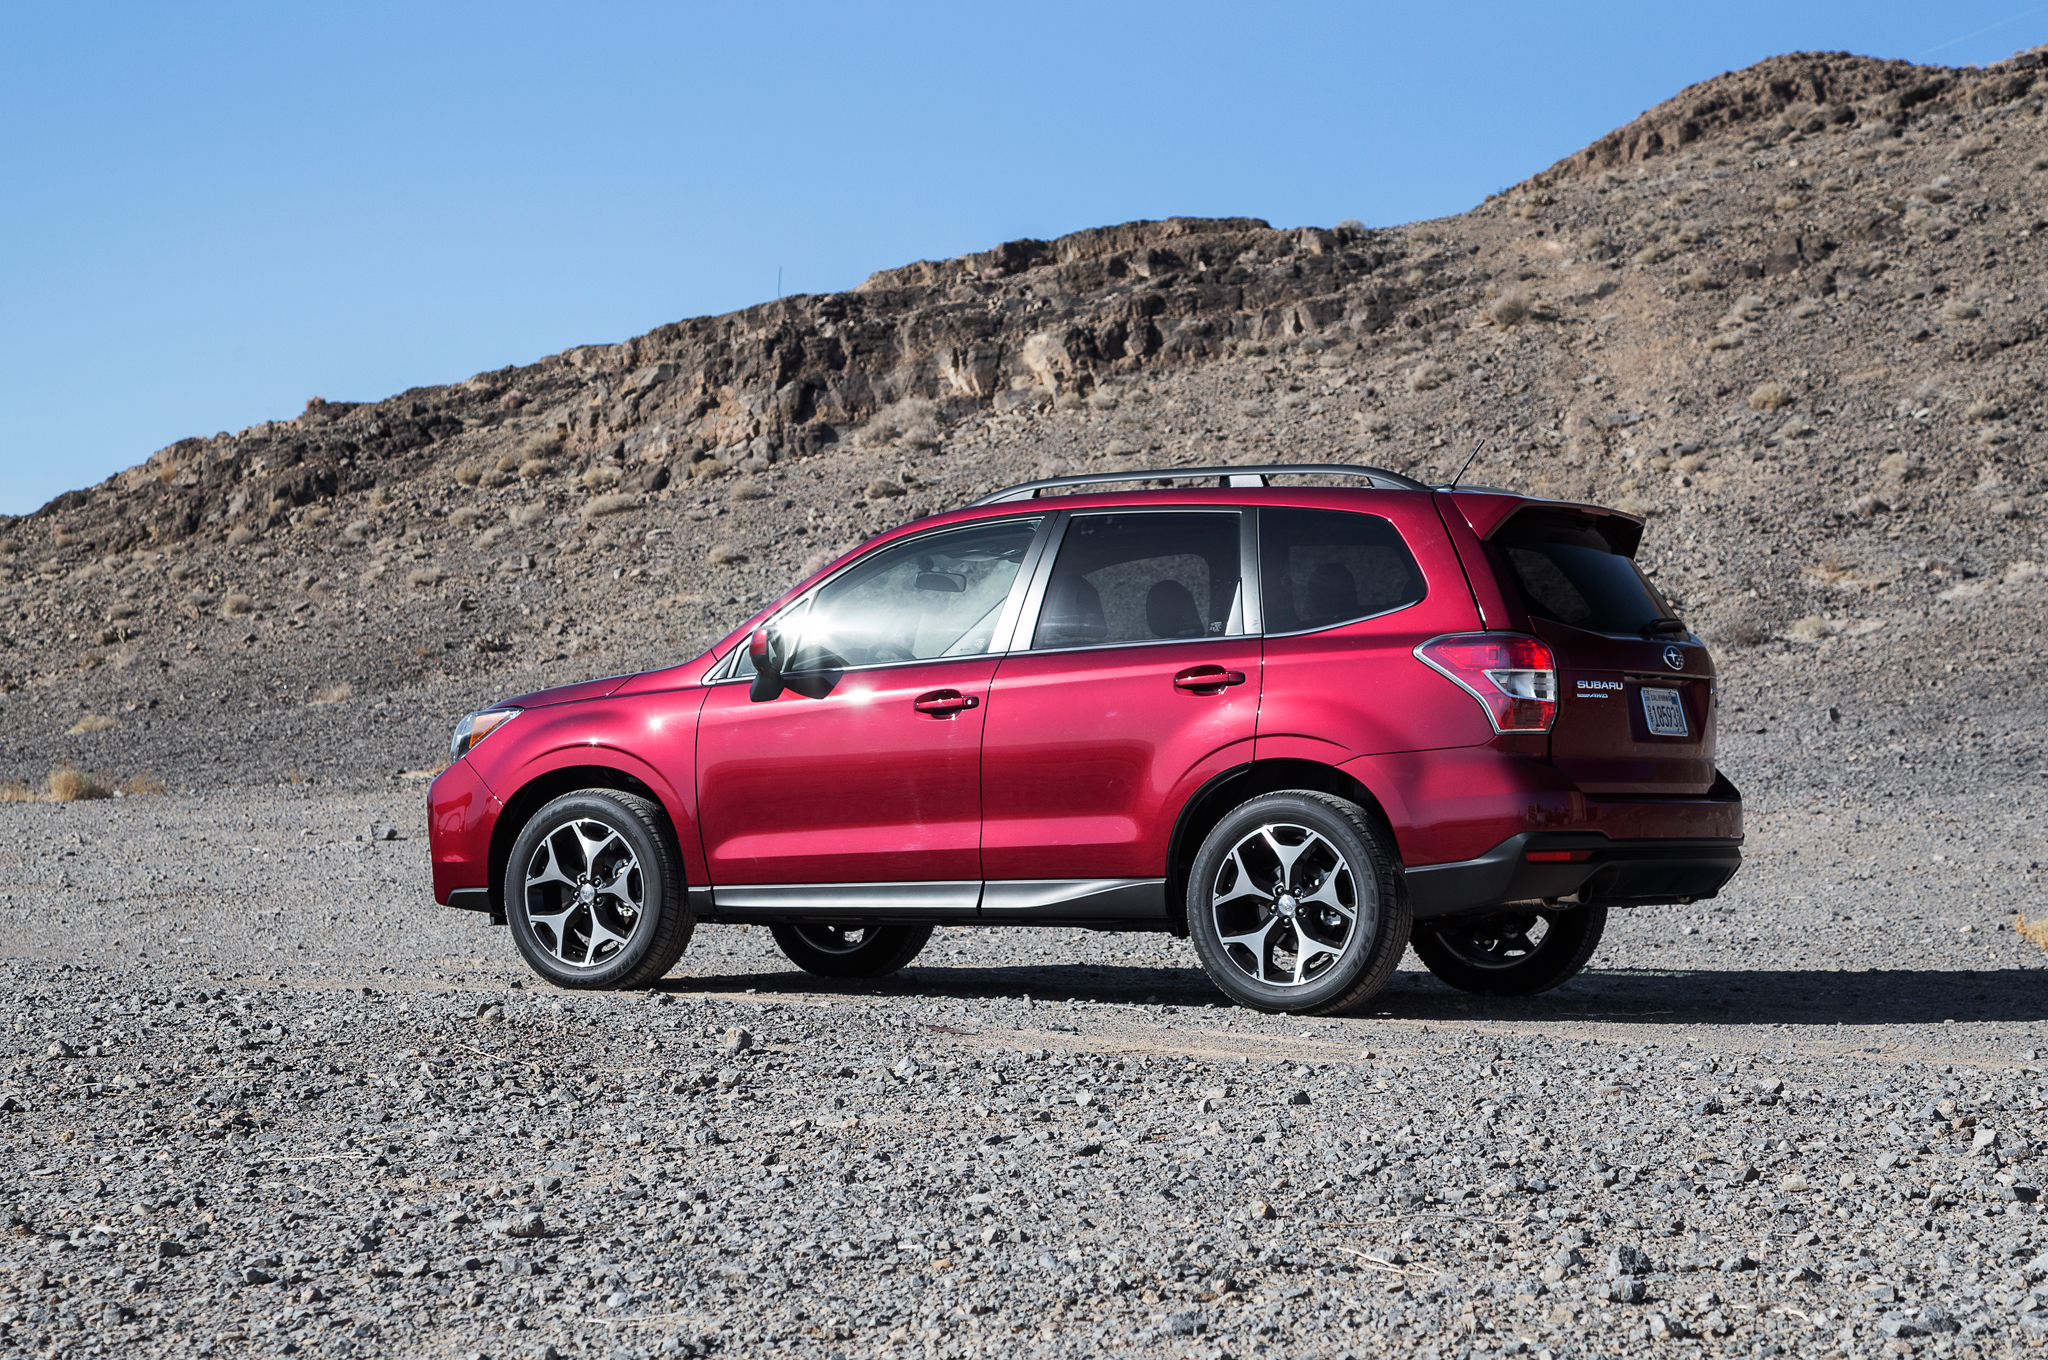 2014 Subaru Forester 2 0XT Long-Term Update 2 - Motor Trend